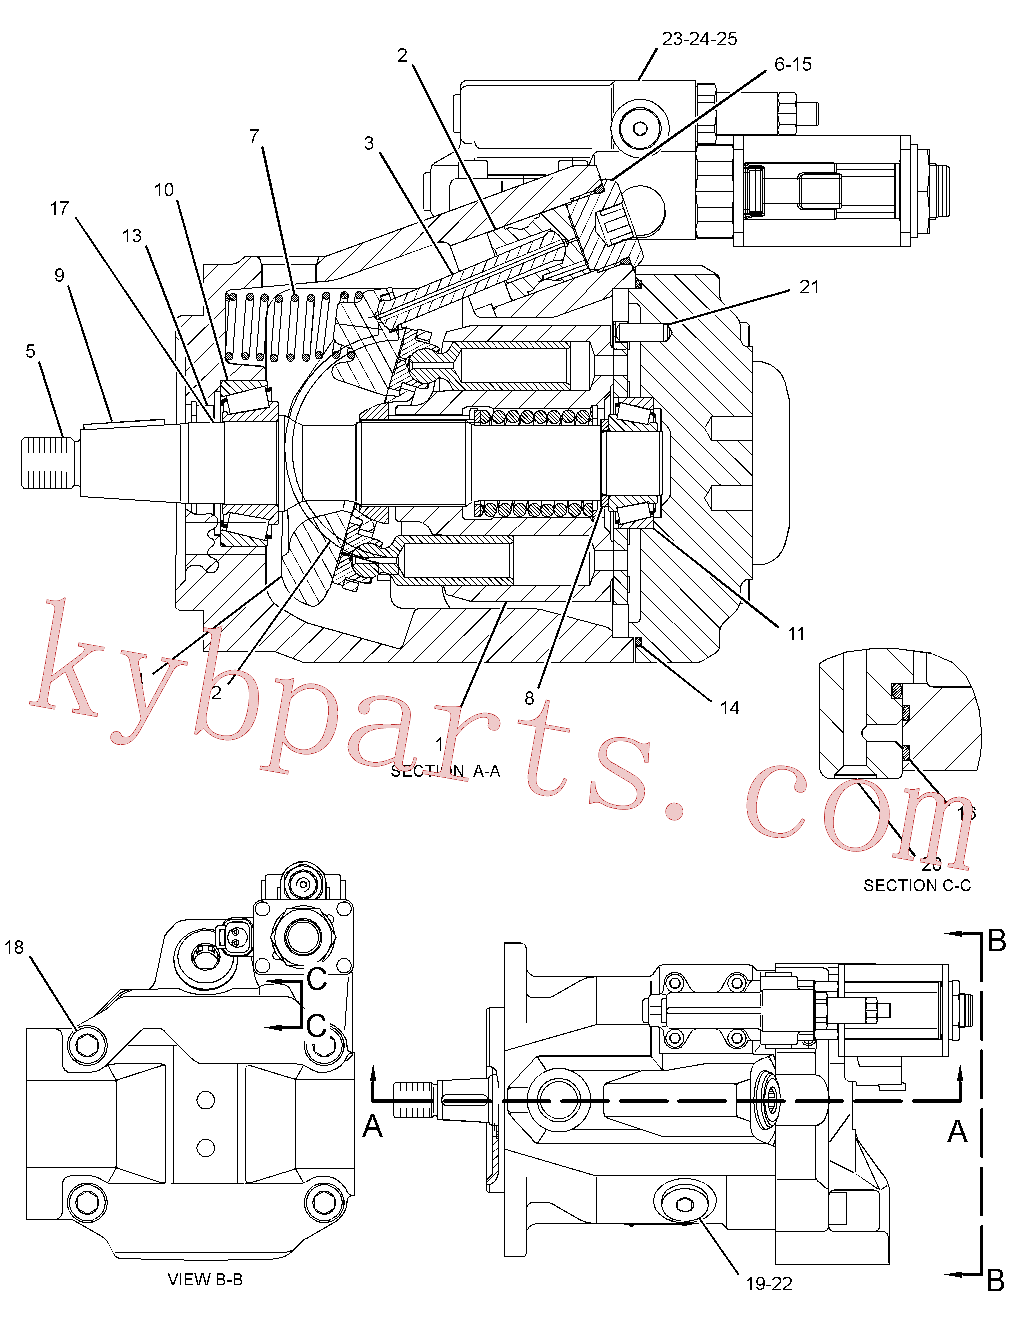 CAT 189-4717 for 365B II Excavator(EXC) hydraulic system 312-5648 Assembly